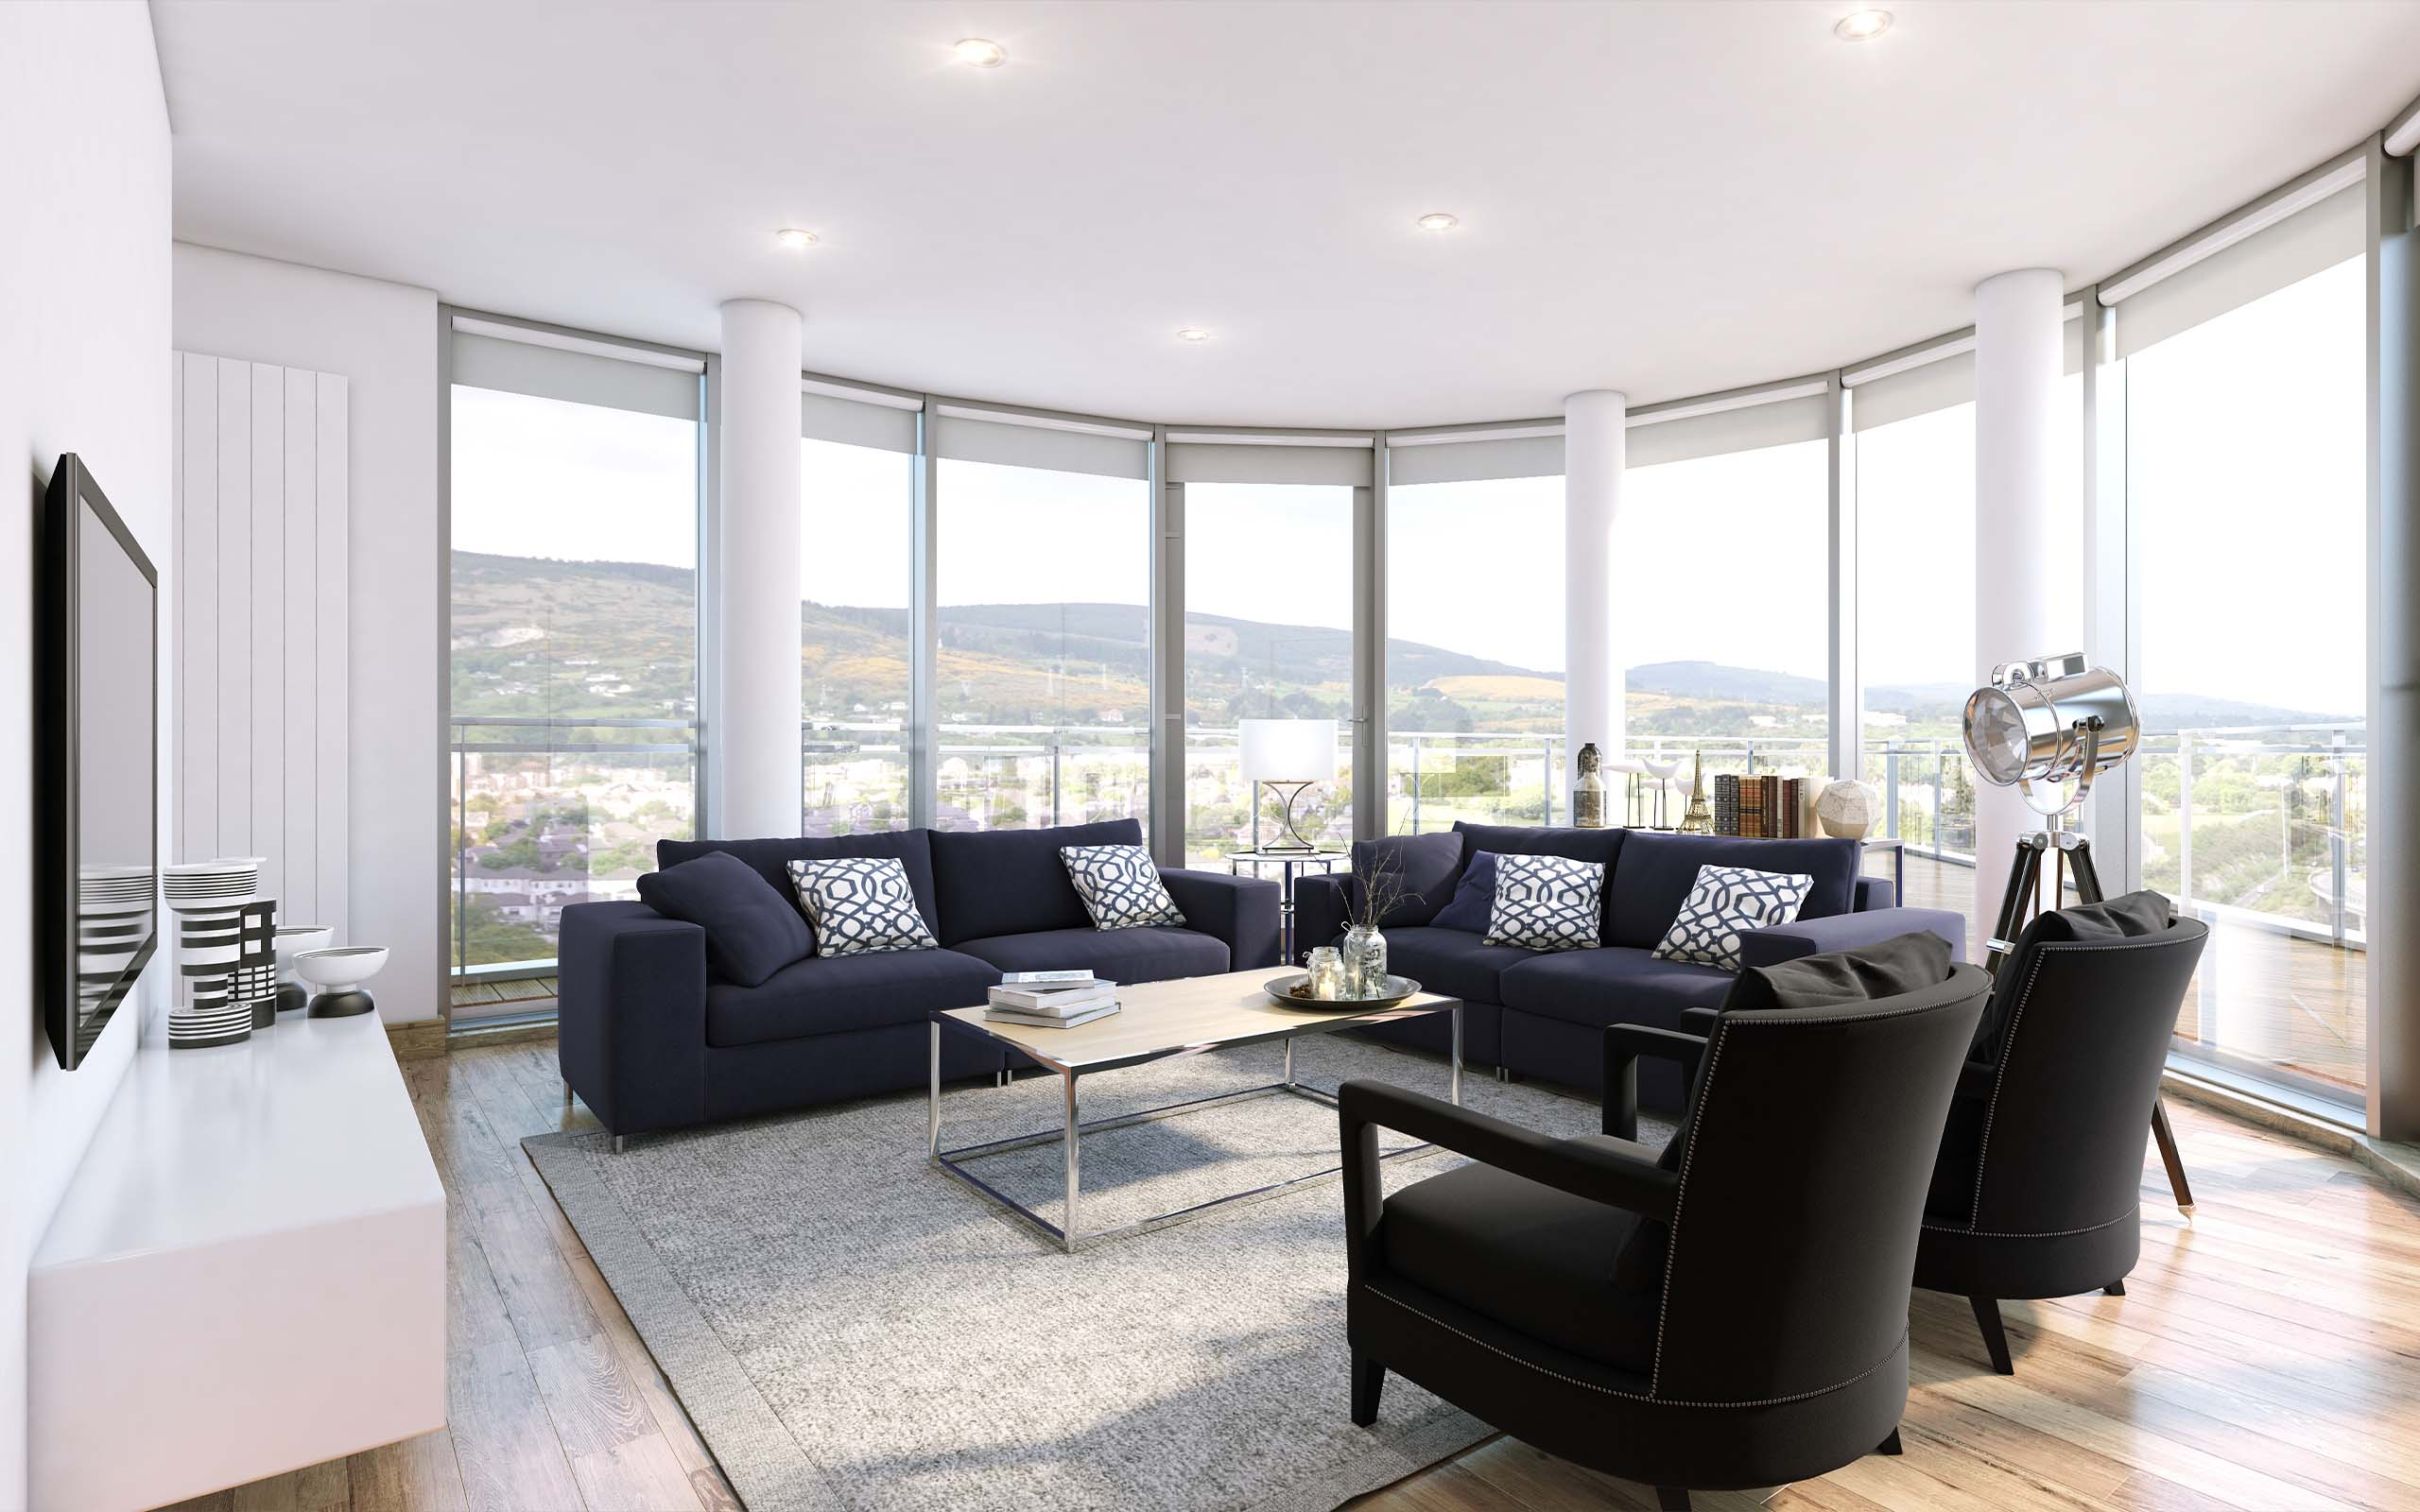 Interior render of a living room in a luxury apartment development.